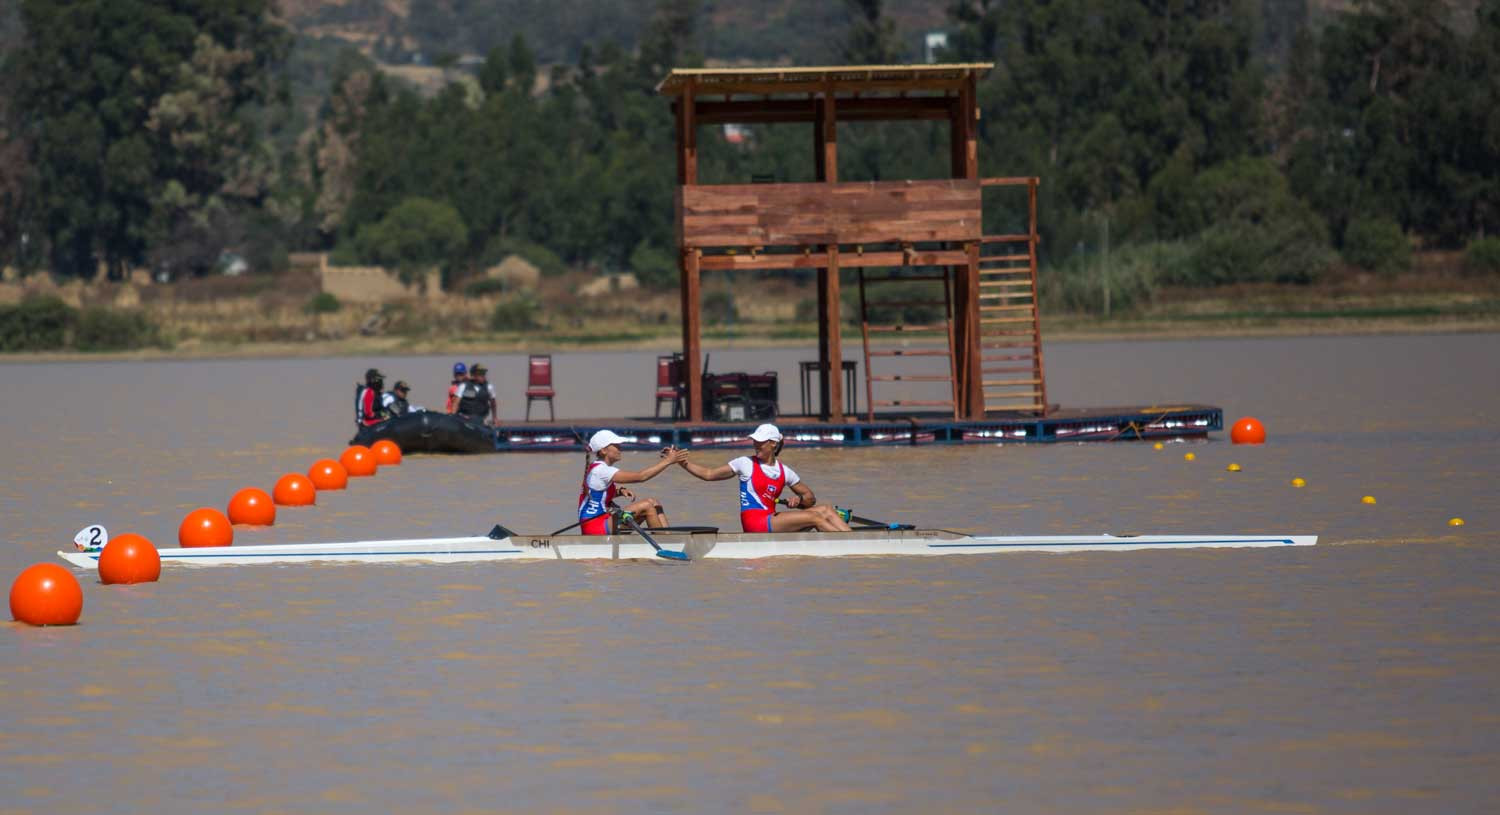 Rowing is among other sports featuring at the South American Games ©Cochabamba 2018